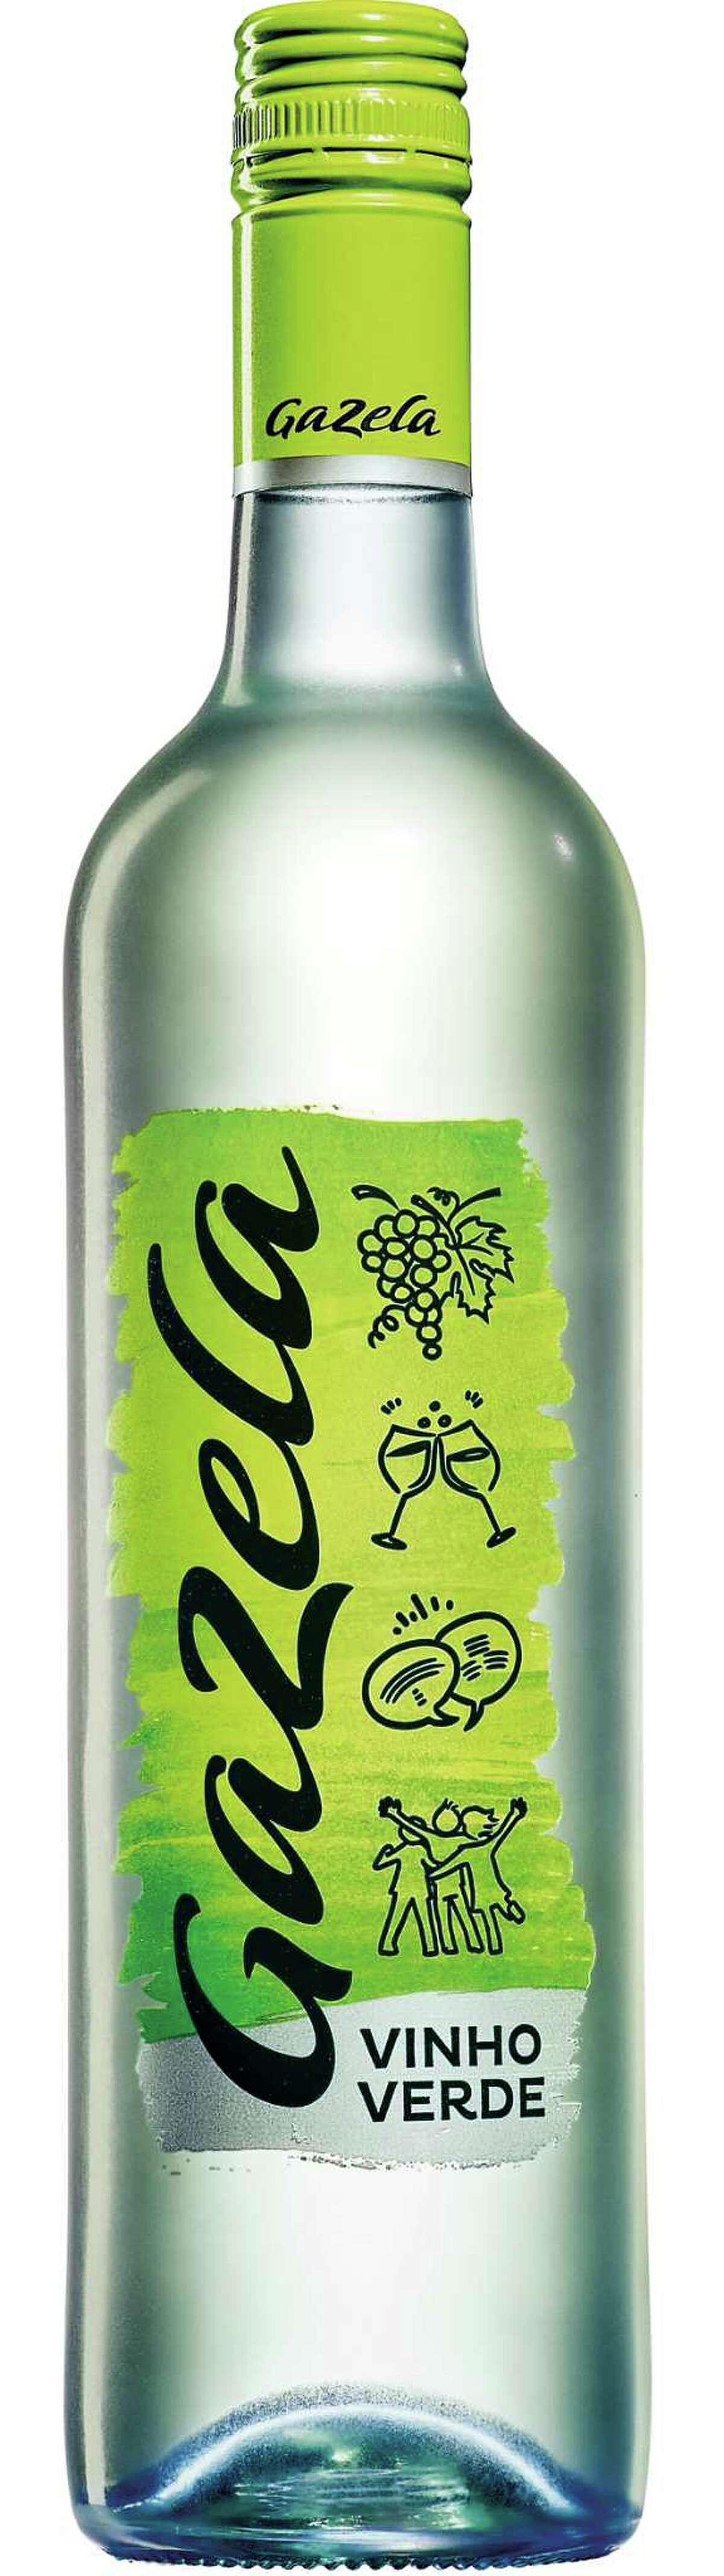 1) Gazela Vinho Verde: $7.99 Shop Now If you love day drinking but hate the inevitable 4 p.m. hangover (same), this low ABV wine is perfect for sunny afternoon sipping.